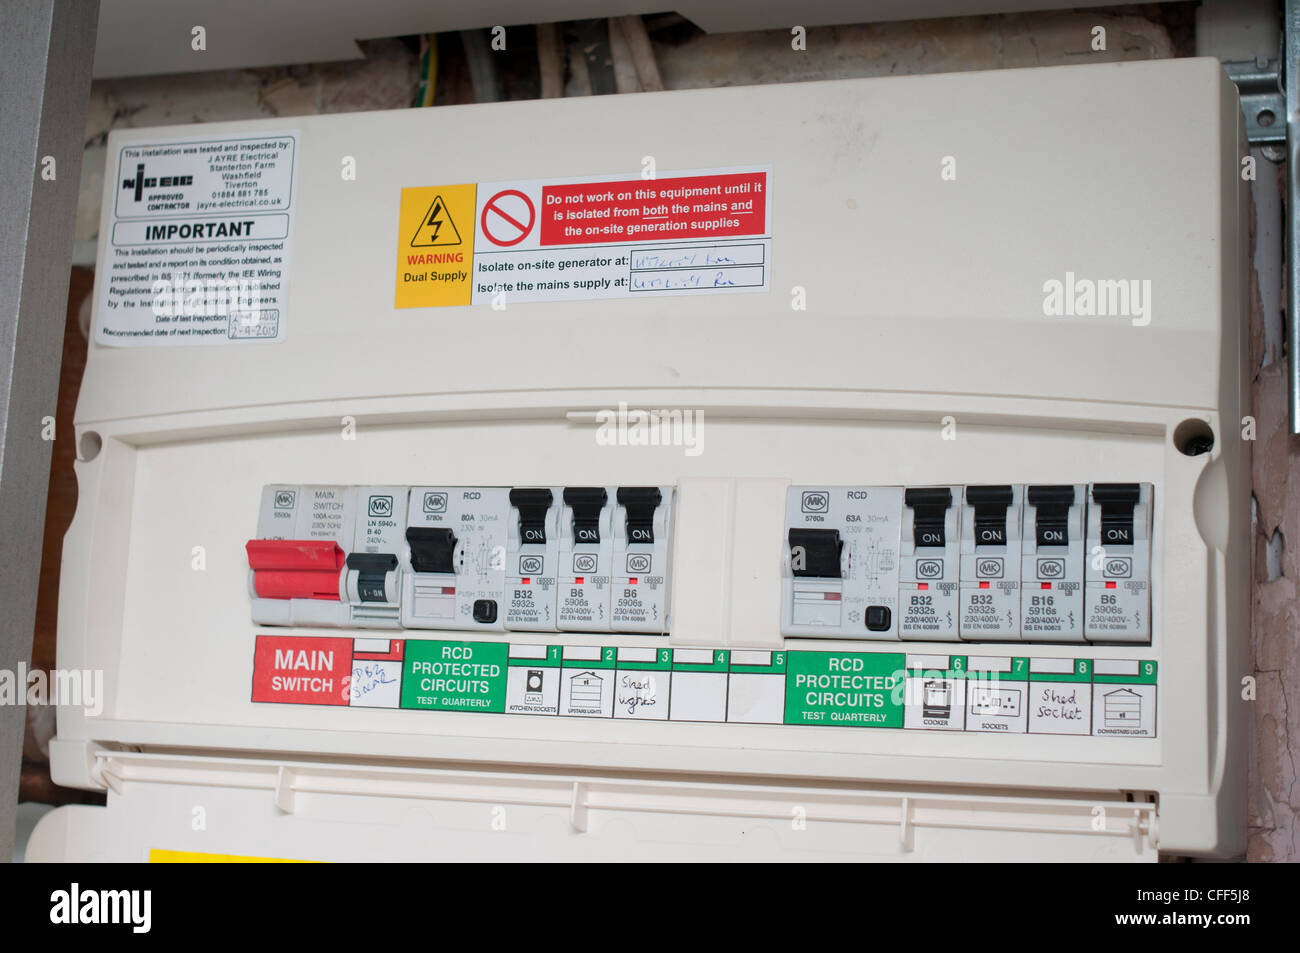 Home Fuse Box Archive Of Automotive Wiring Diagram Buy Spares For Bmw I Fuses And Domestic Stock Photos Images Alamy Rh Com